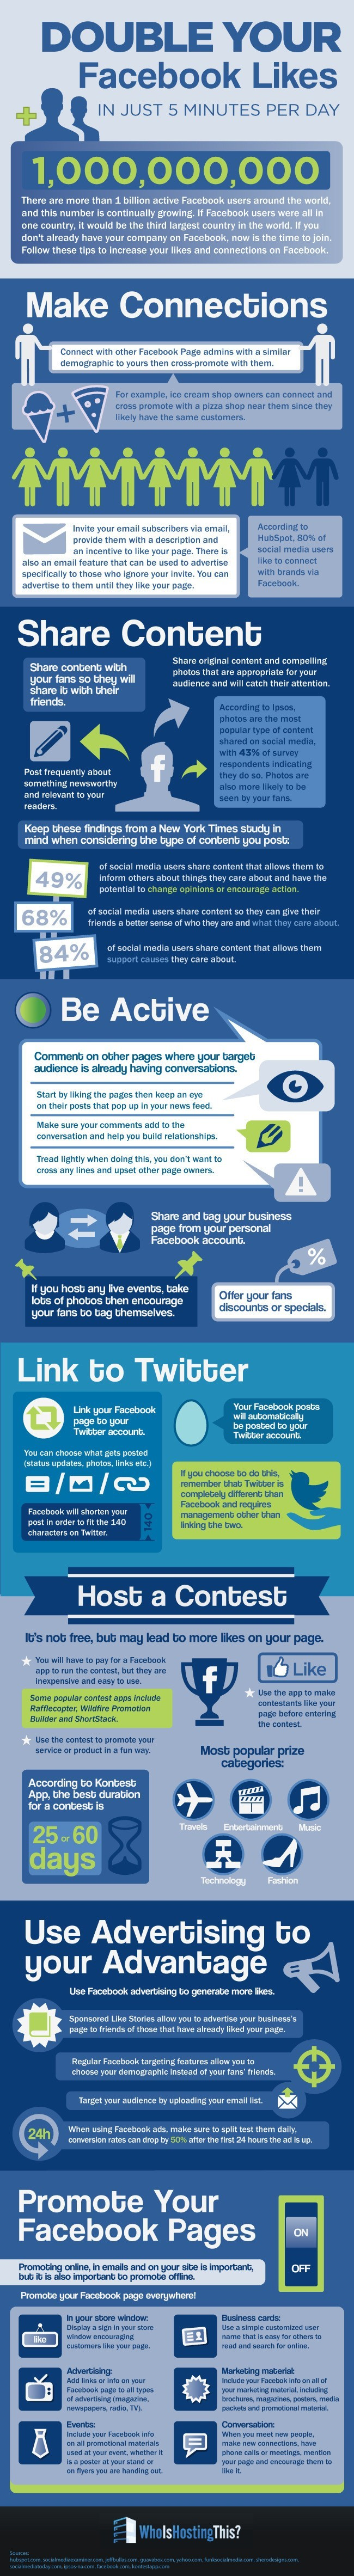 Double Your Facebook Likes In 5 Minutes A Day Infographic image